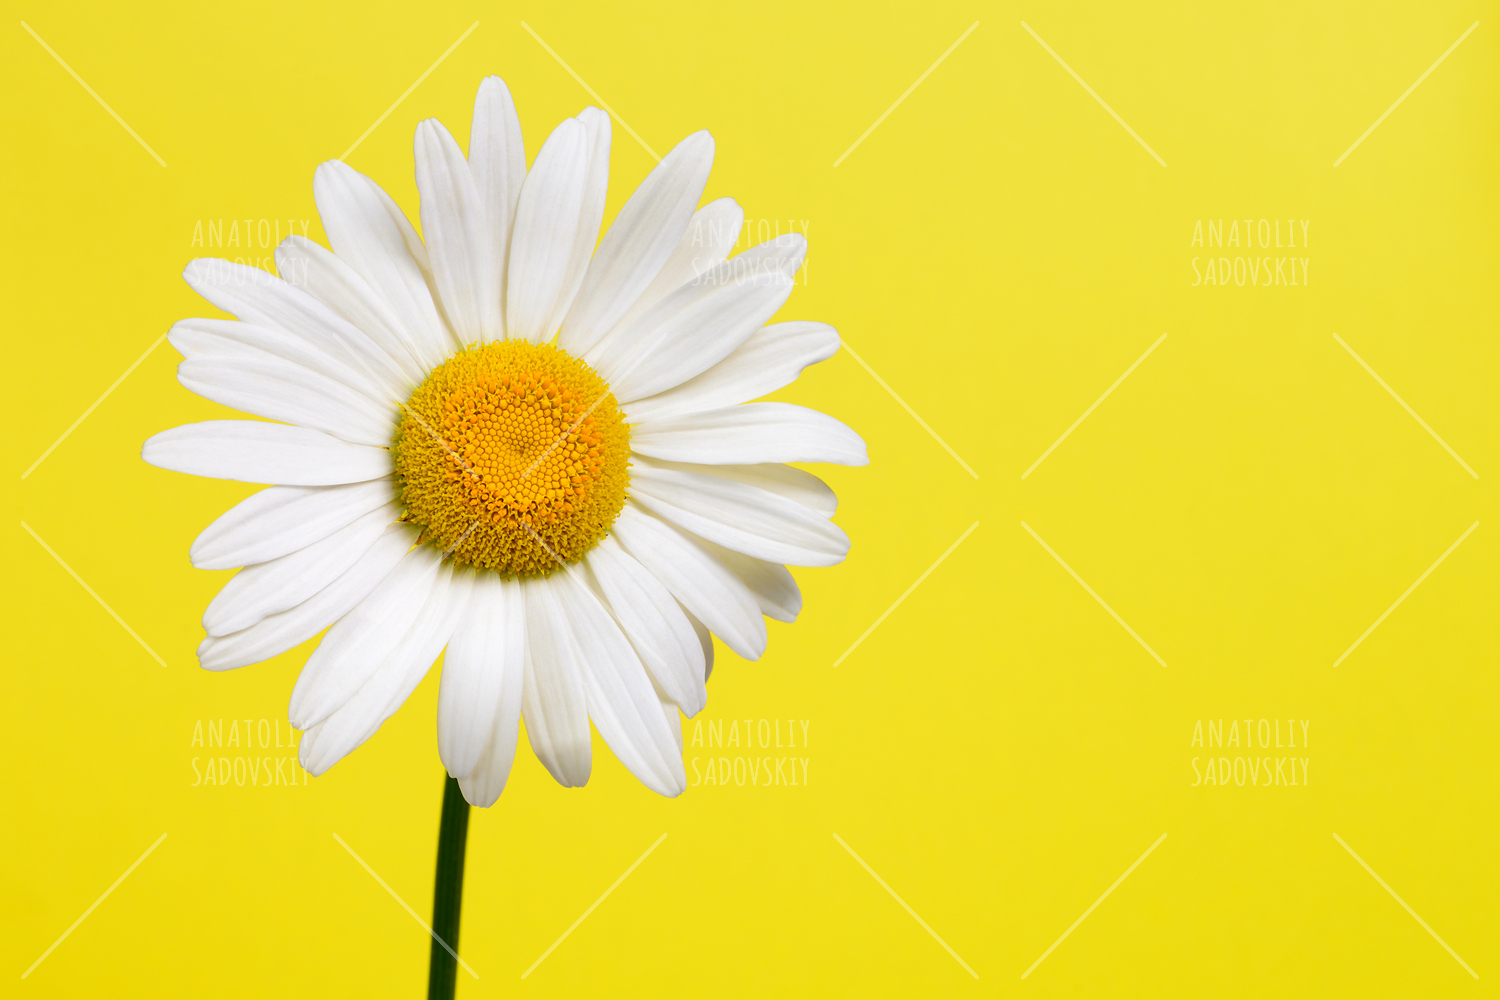 Daisy flower on yellow background daisy flower on yellow background example image 1 mightylinksfo